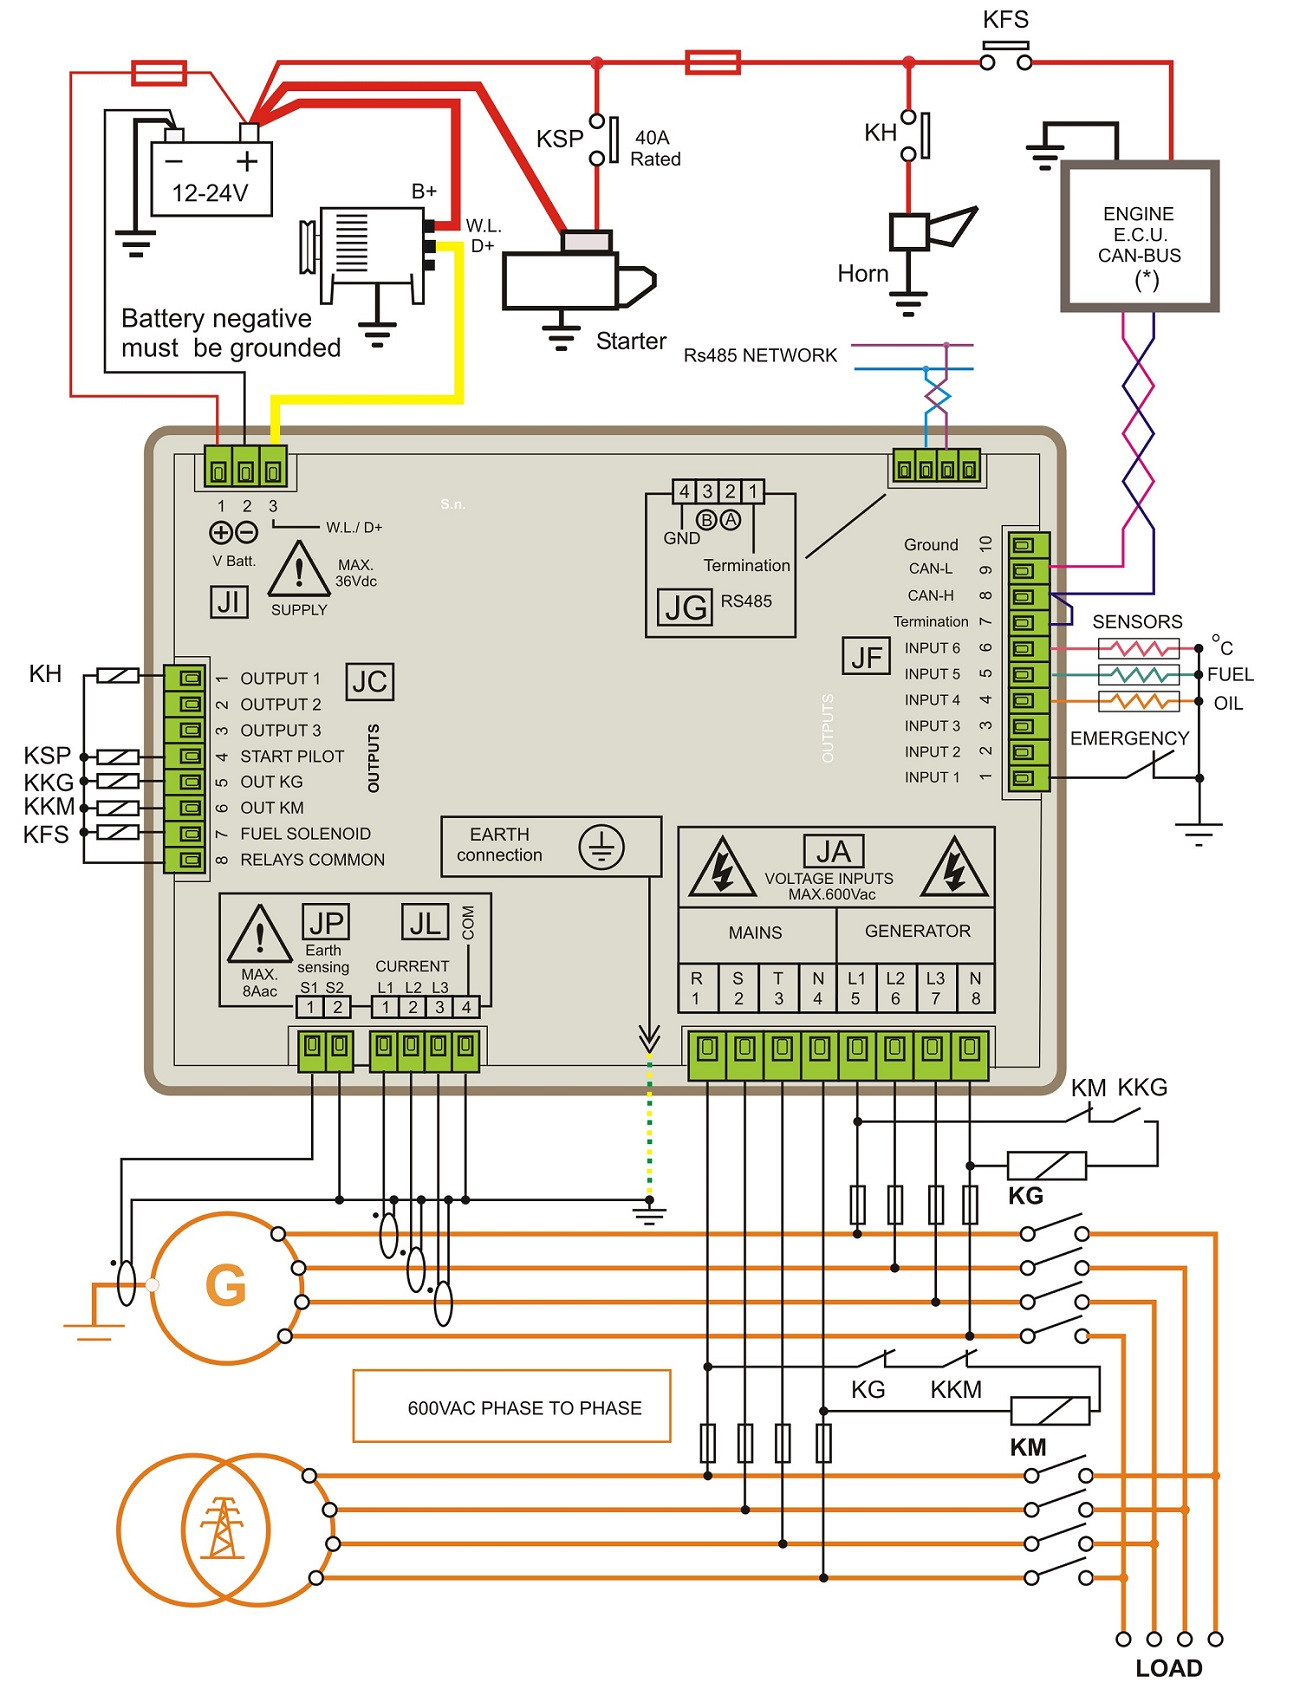 find out here idec sh1b 05 wiring diagram sample cat loader ul wiring diagram rh2b ul wiring diagram